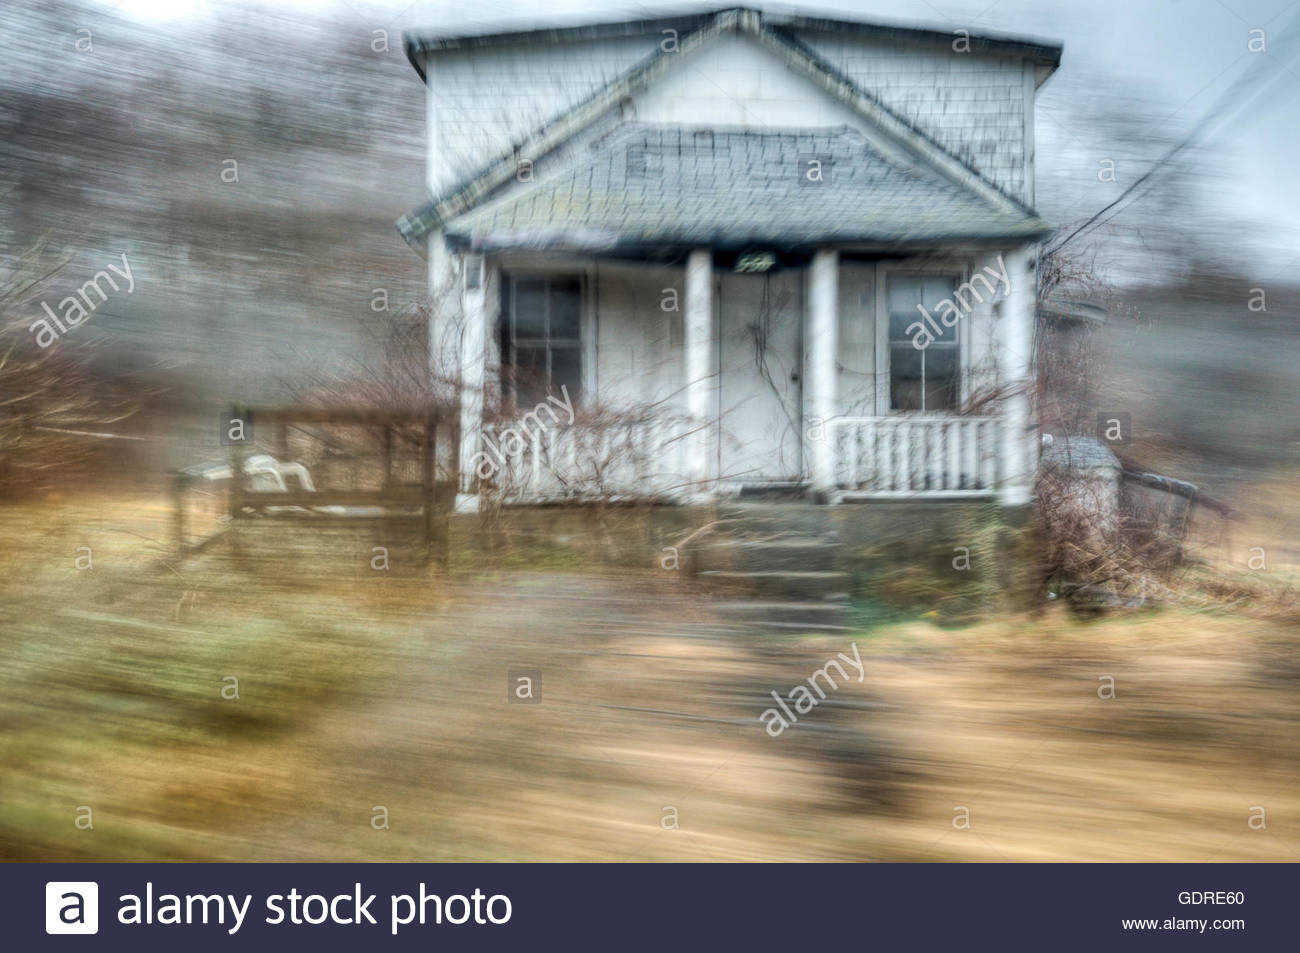 Motion blur speeding by abandoned house - Stock Image